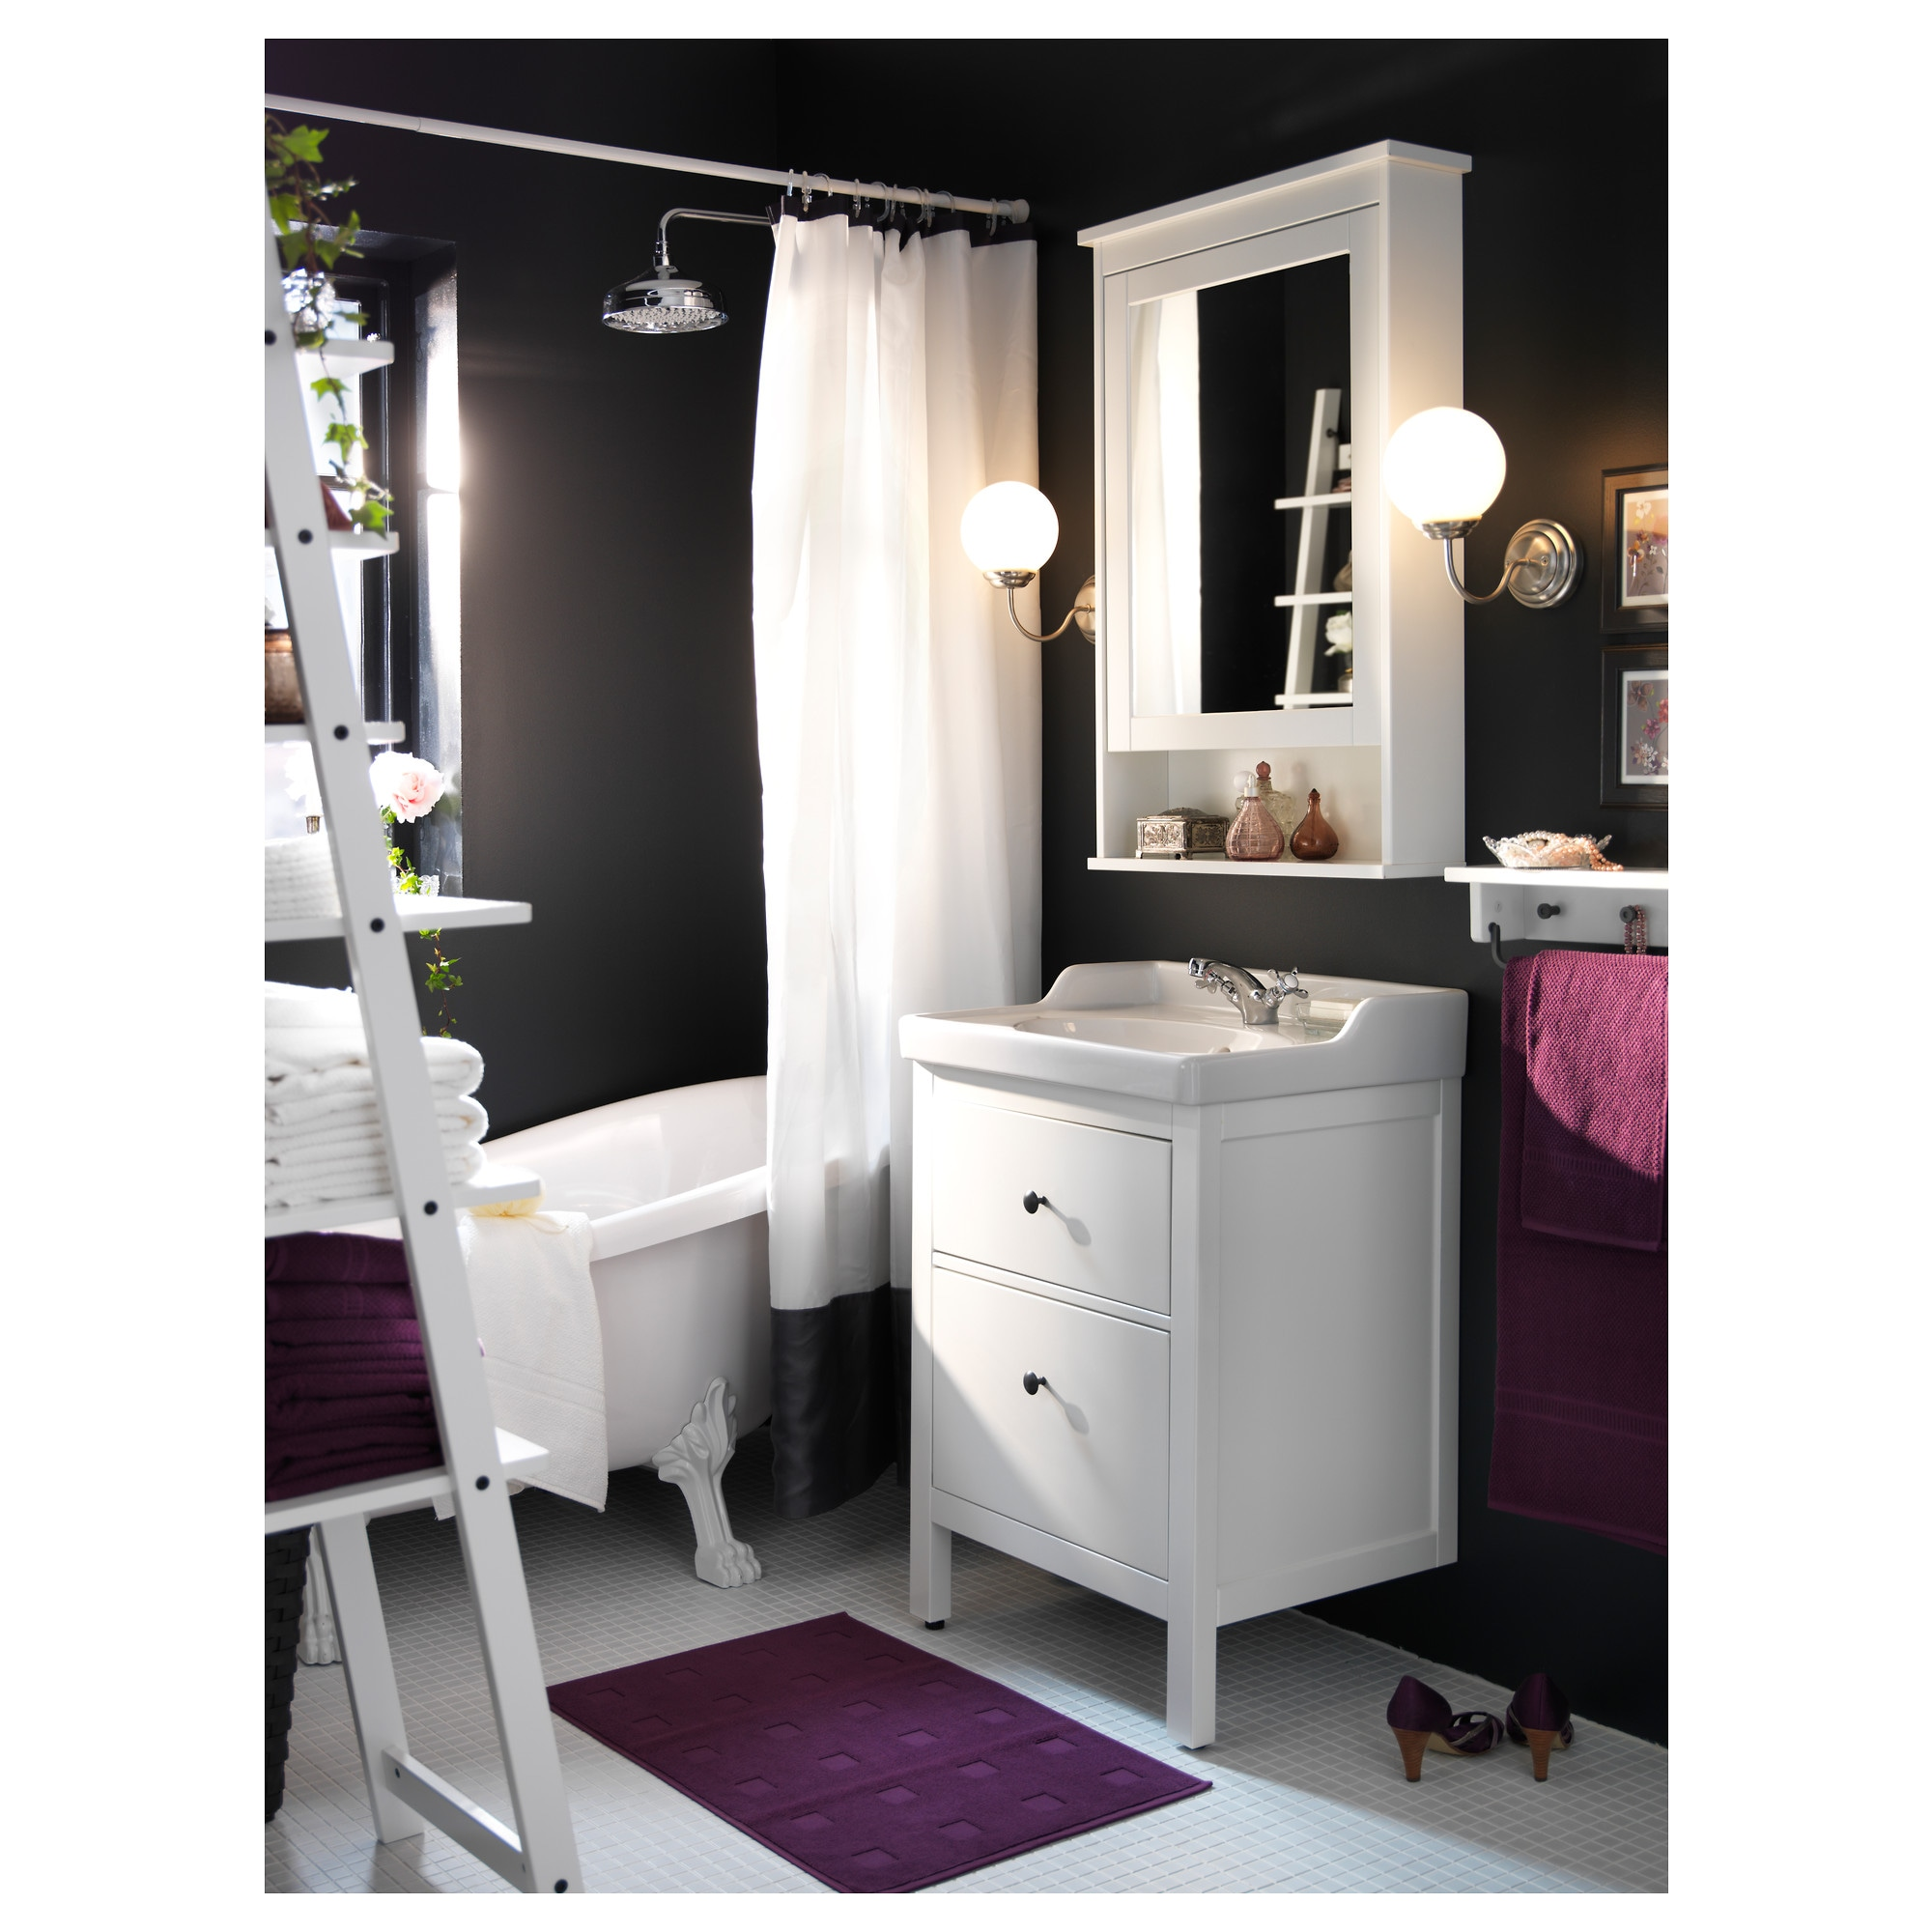 Bathroom mirror cabinets ikea - Bathroom Mirror Cabinets Ikea 24